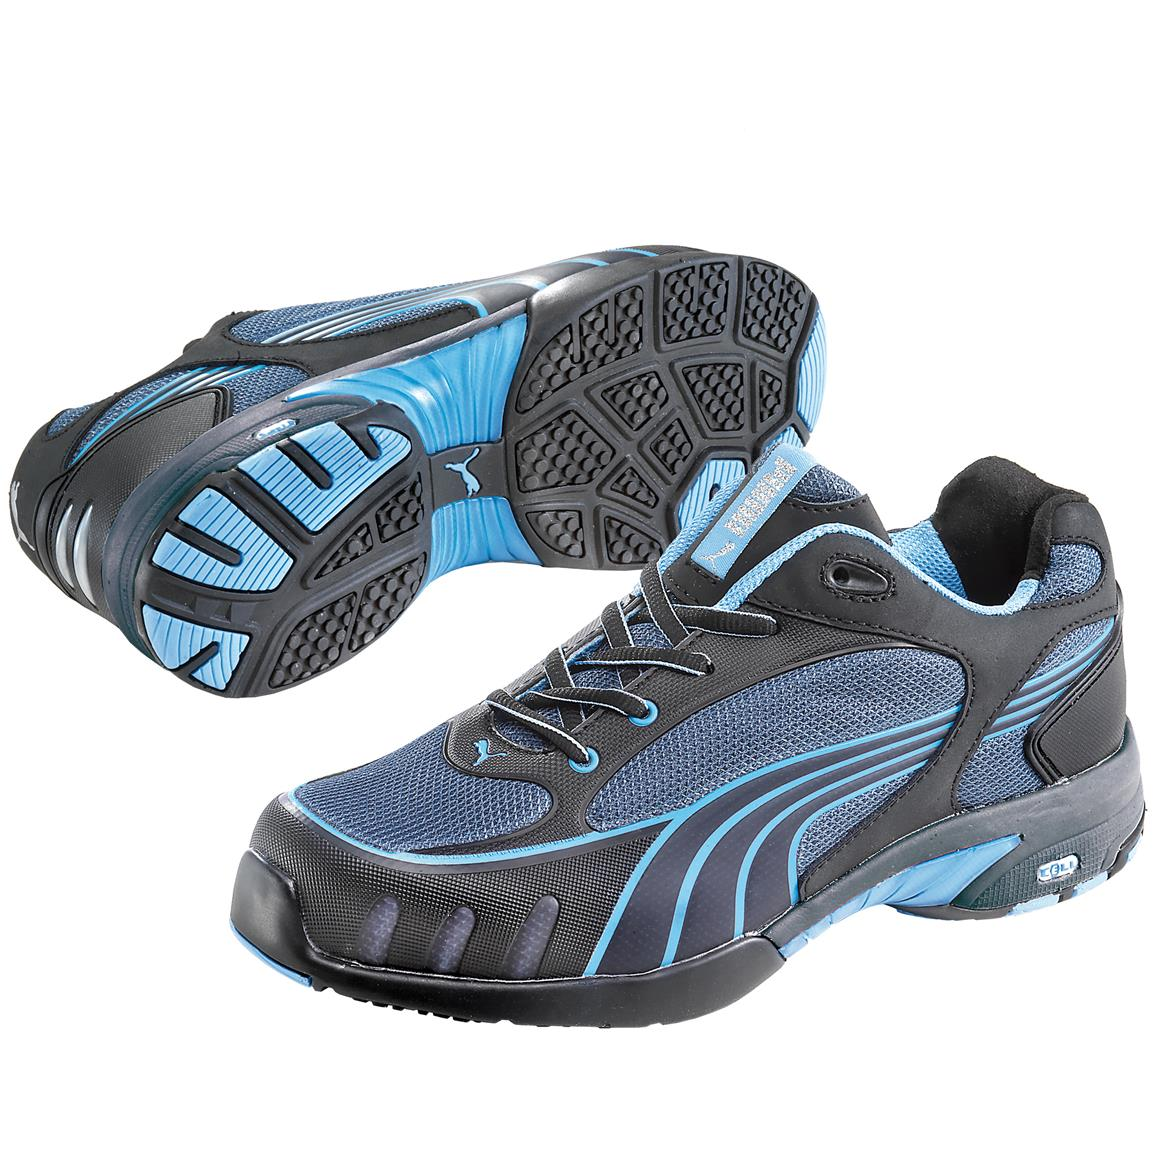 Women's Puma Safety Fuse Motion SD Low Steel Toe Shoes, Blue